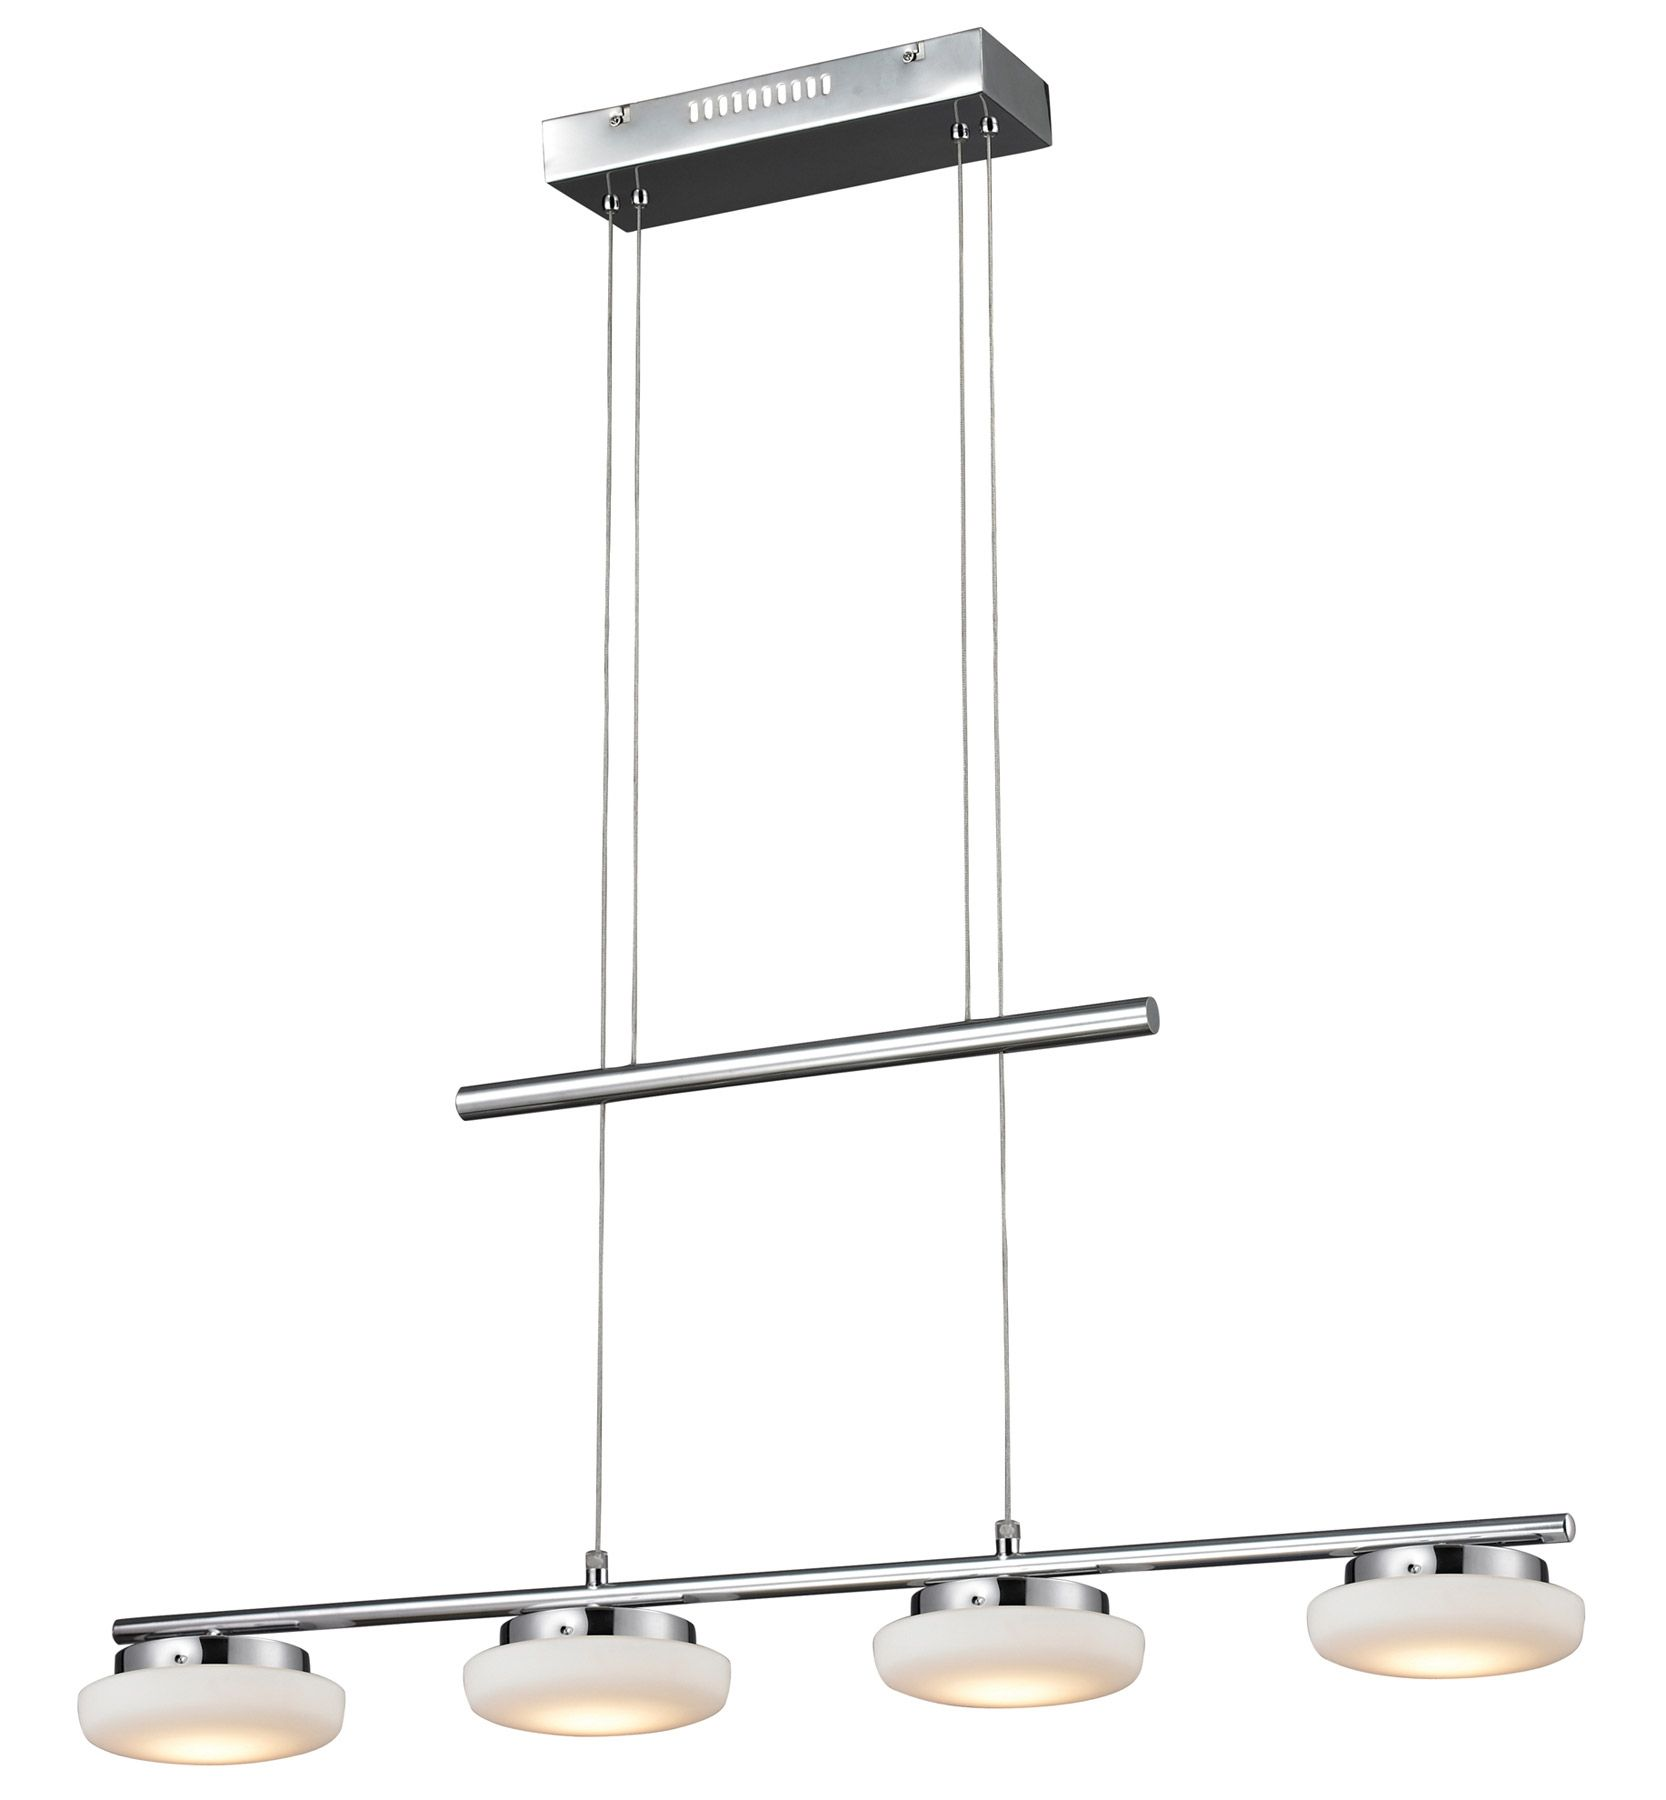 Retractable pull down ceiling light http retractable pull down ceiling light mozeypictures Image collections